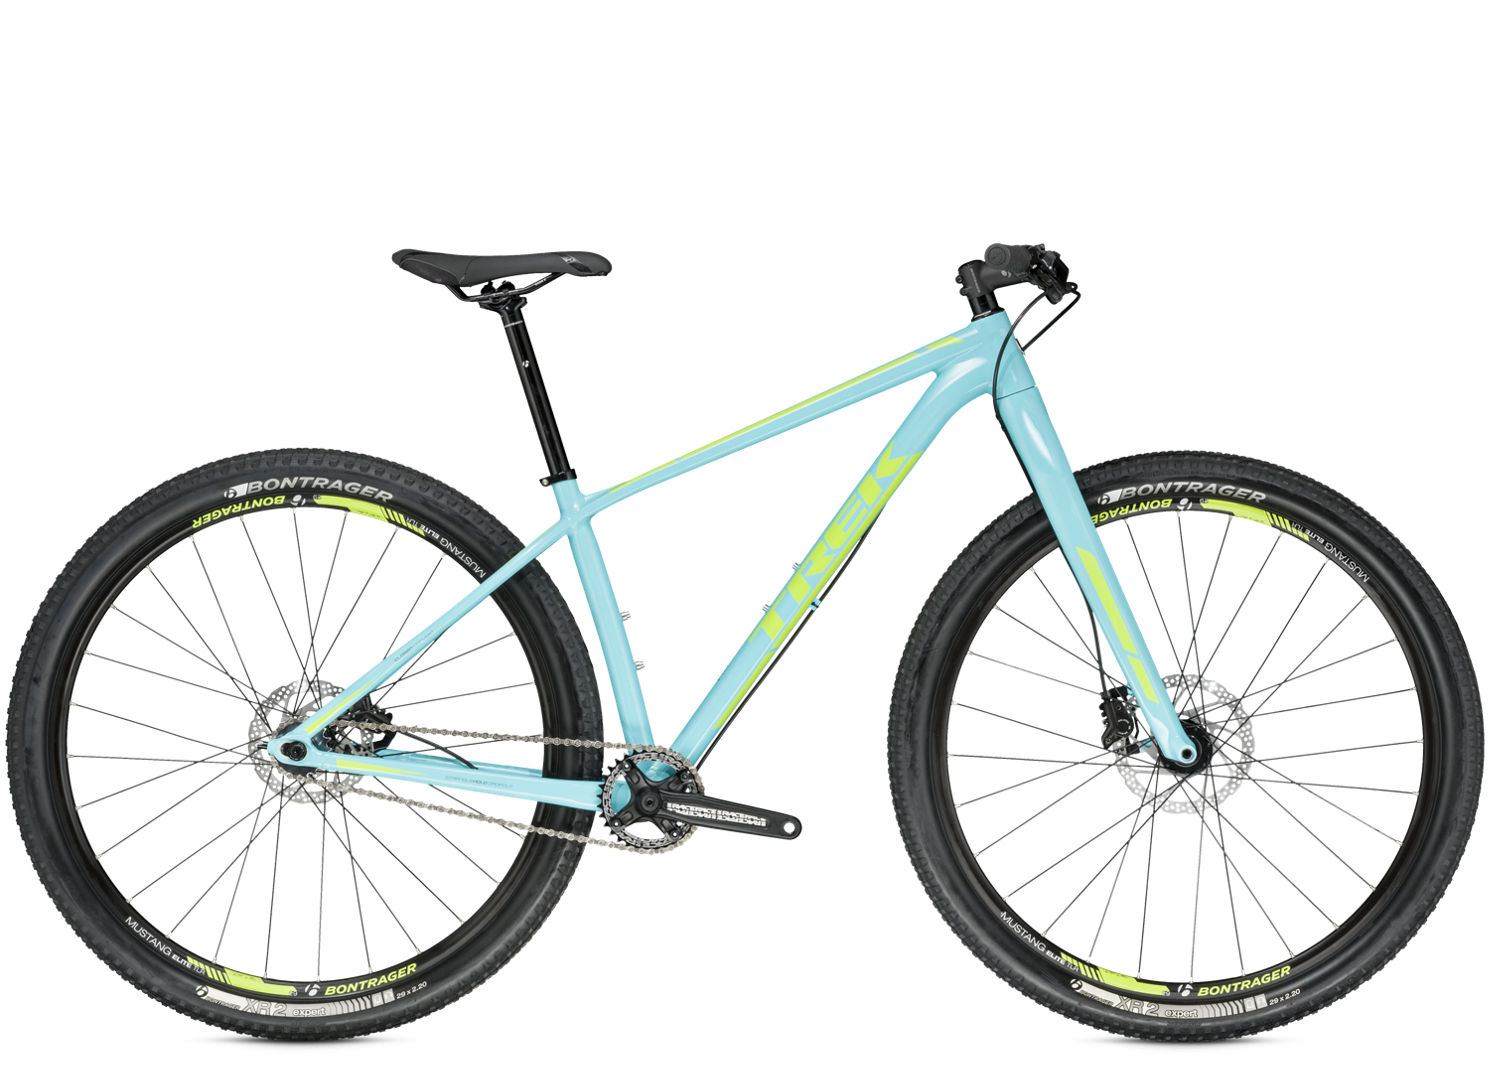 f35c361b408 Single Speed Mountain Bike Roundup - 2019 SS MTB Models & Specs